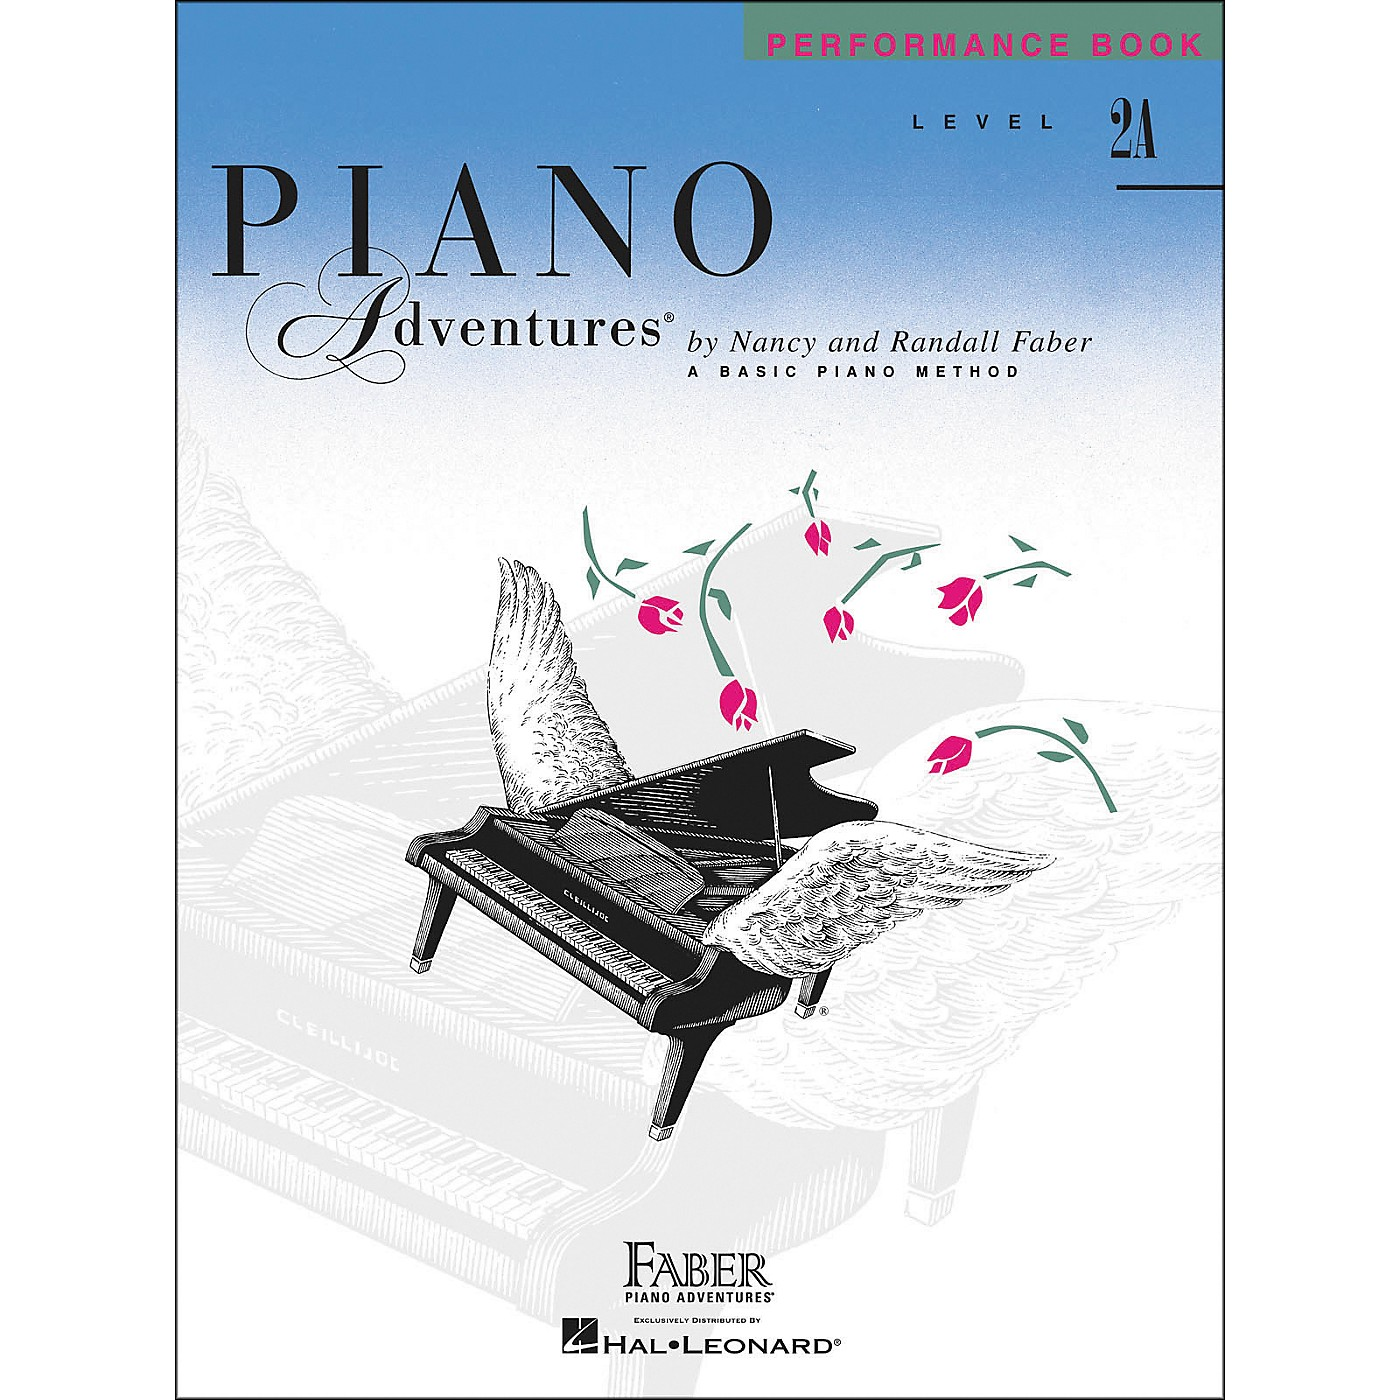 Faber Piano Adventures Piano Adventures Performance Book Level 2A thumbnail